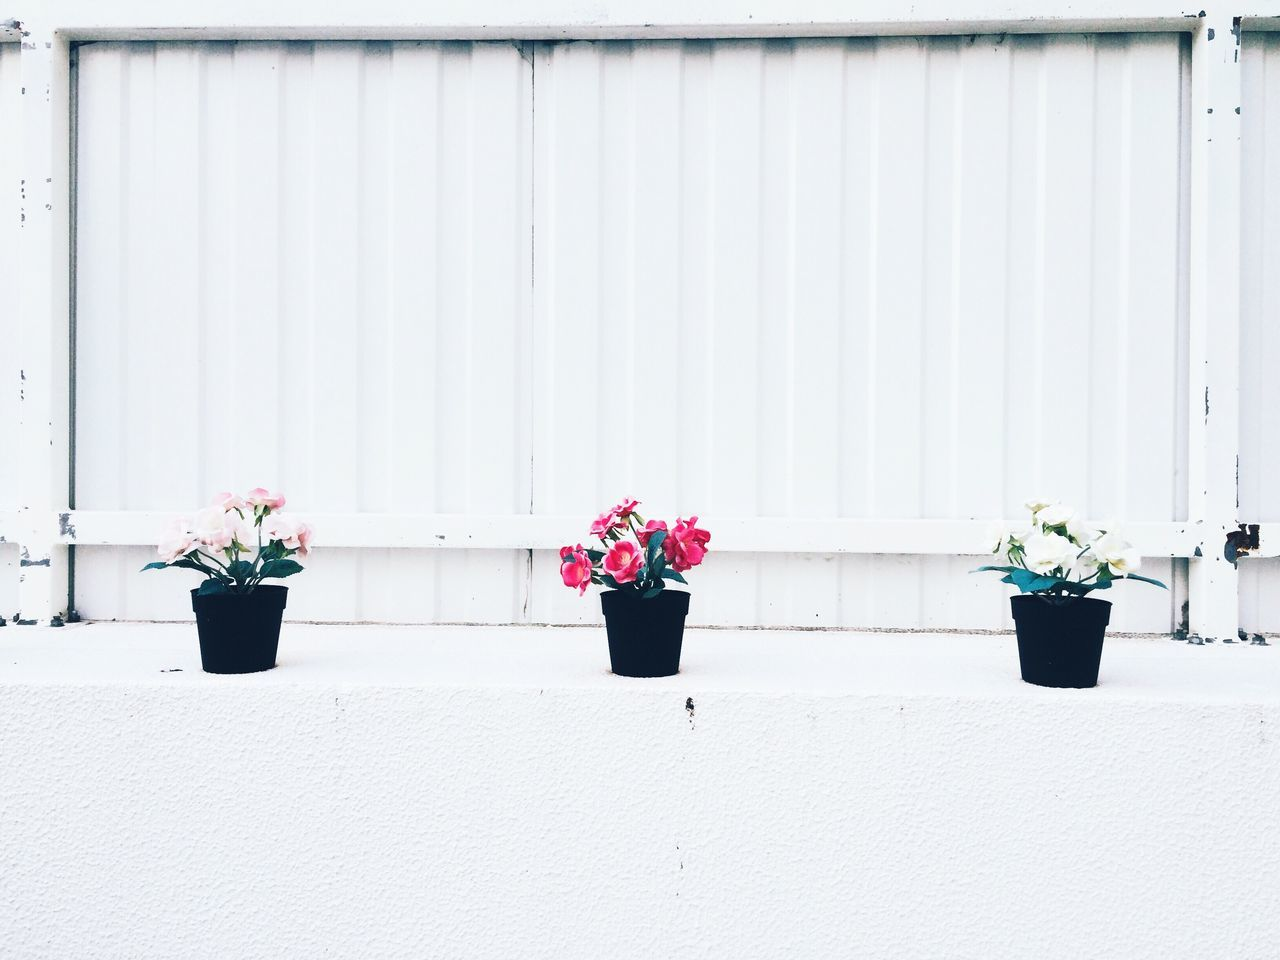 Potted Plants On Building Terrace